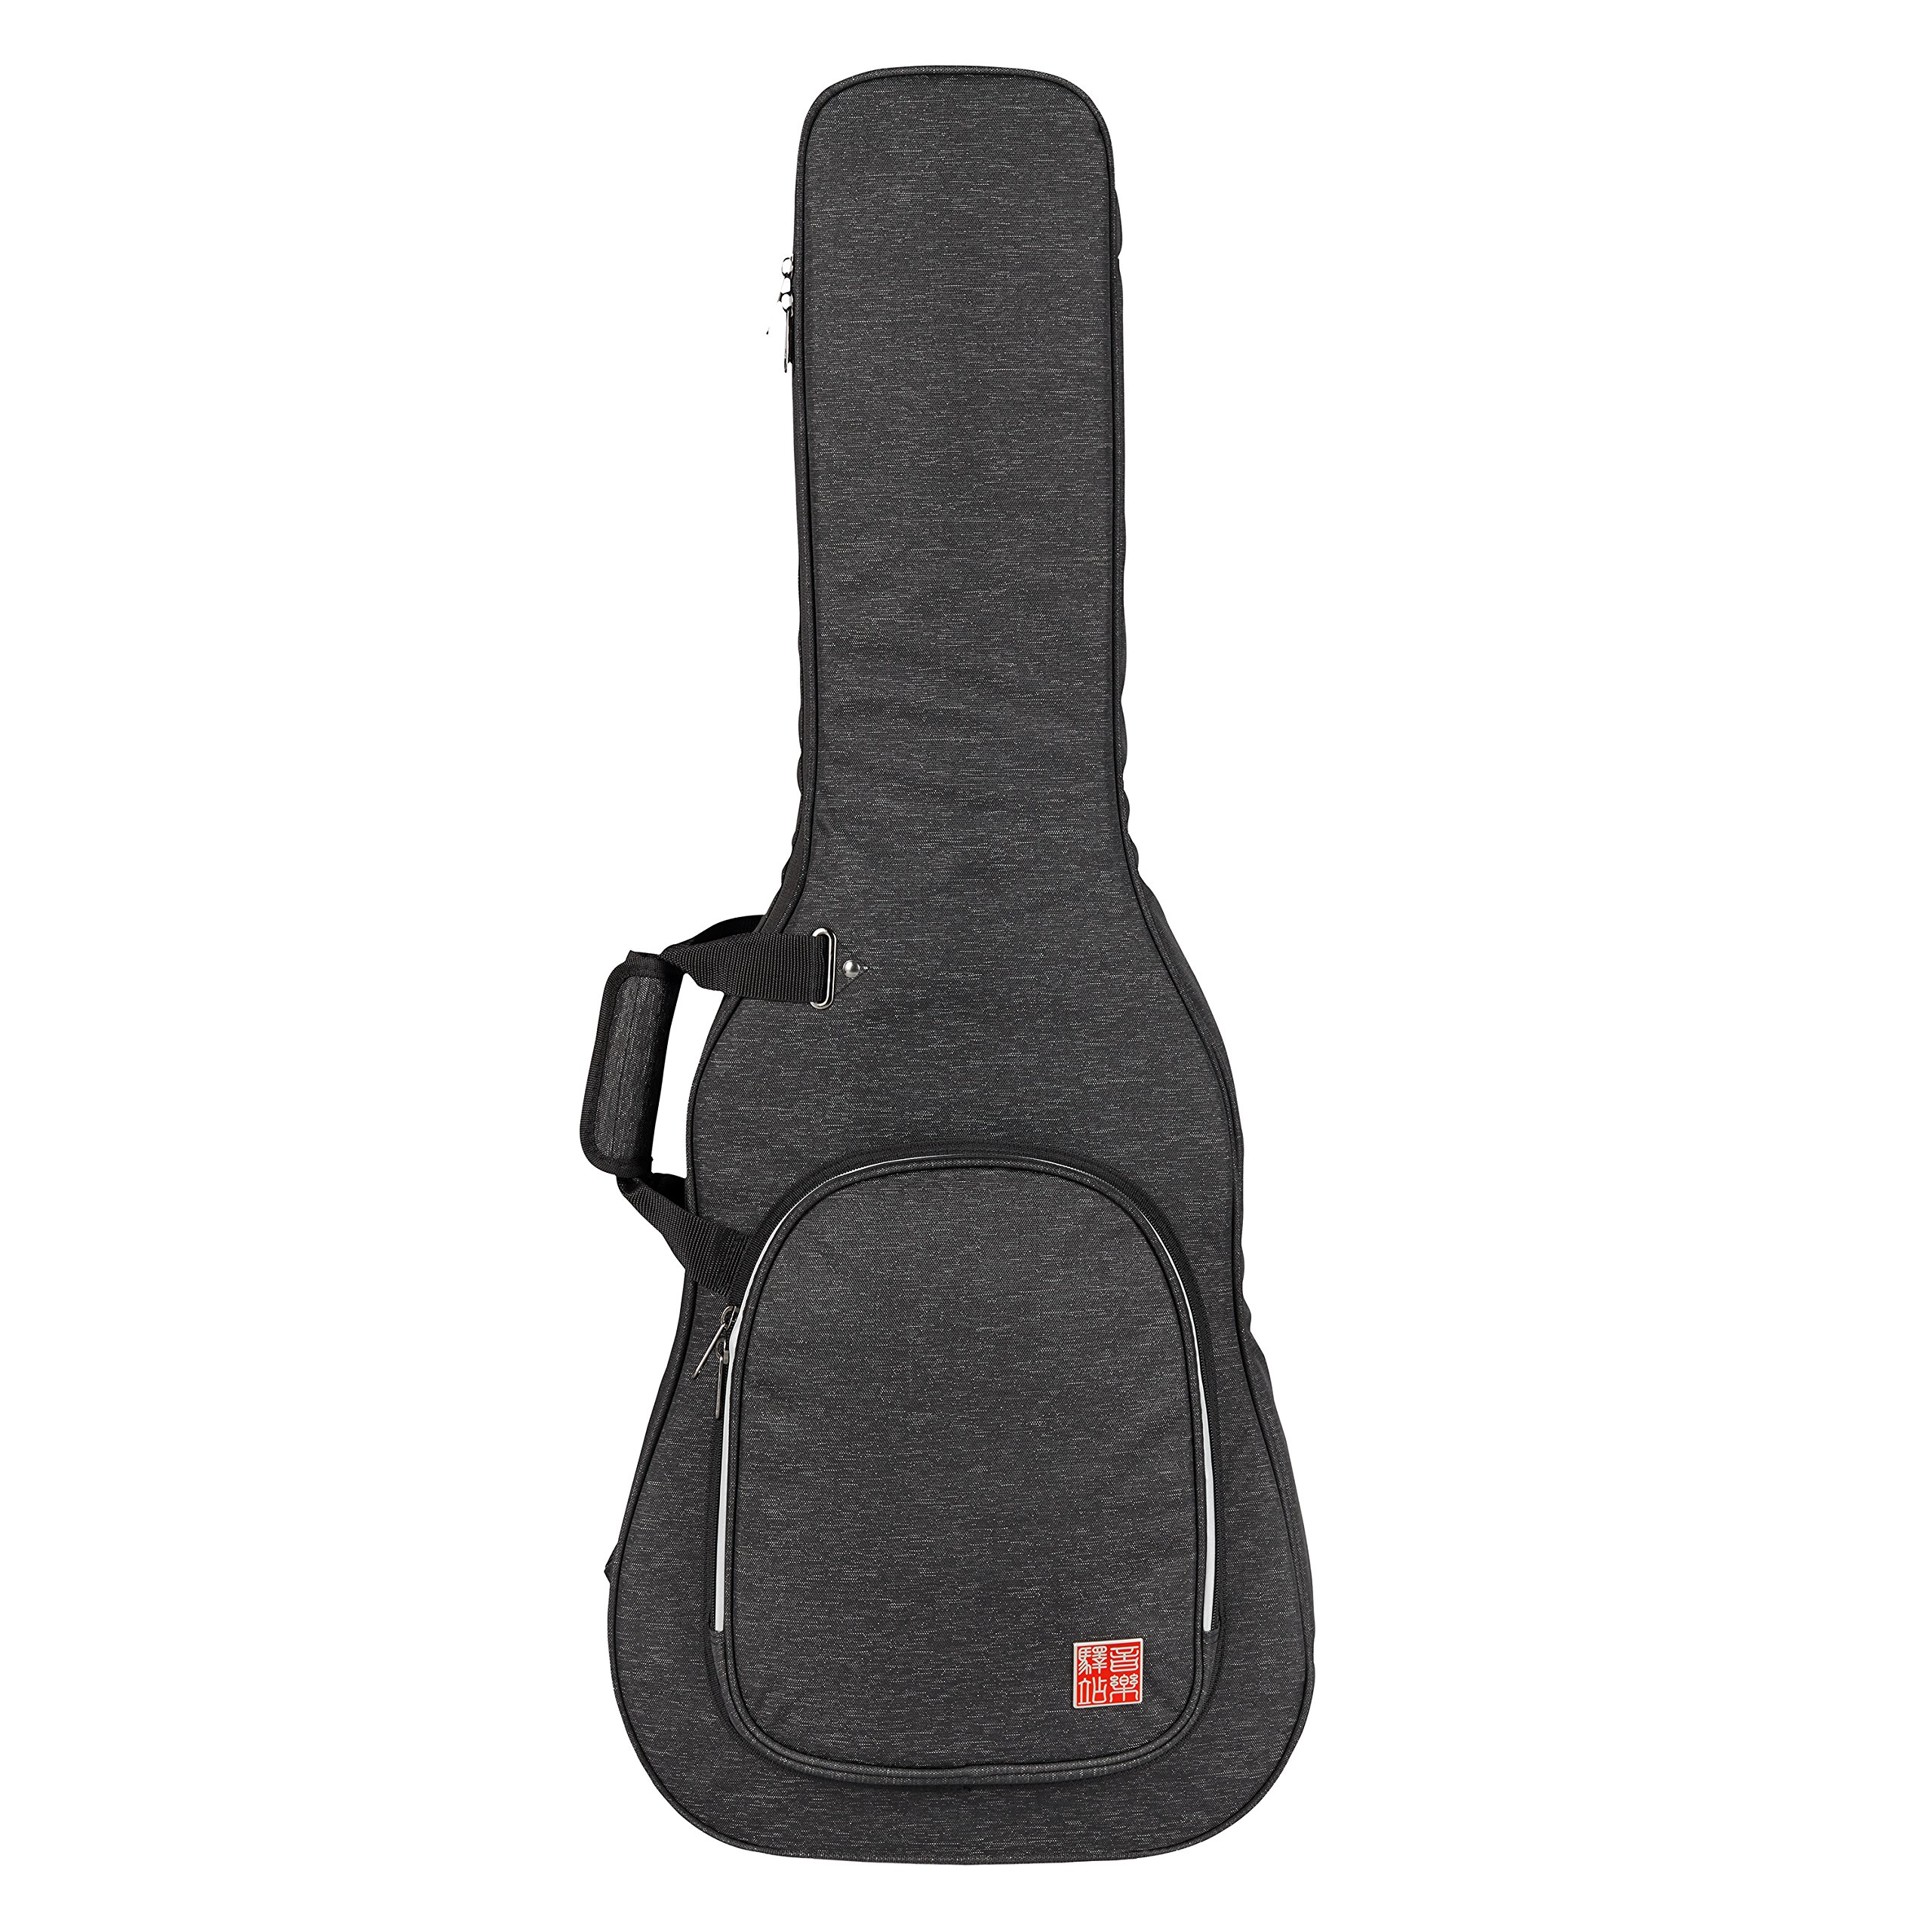 Music Area RB20 Electric Guitar Gig Bag Waterproof with 20mm cushion protection - Black